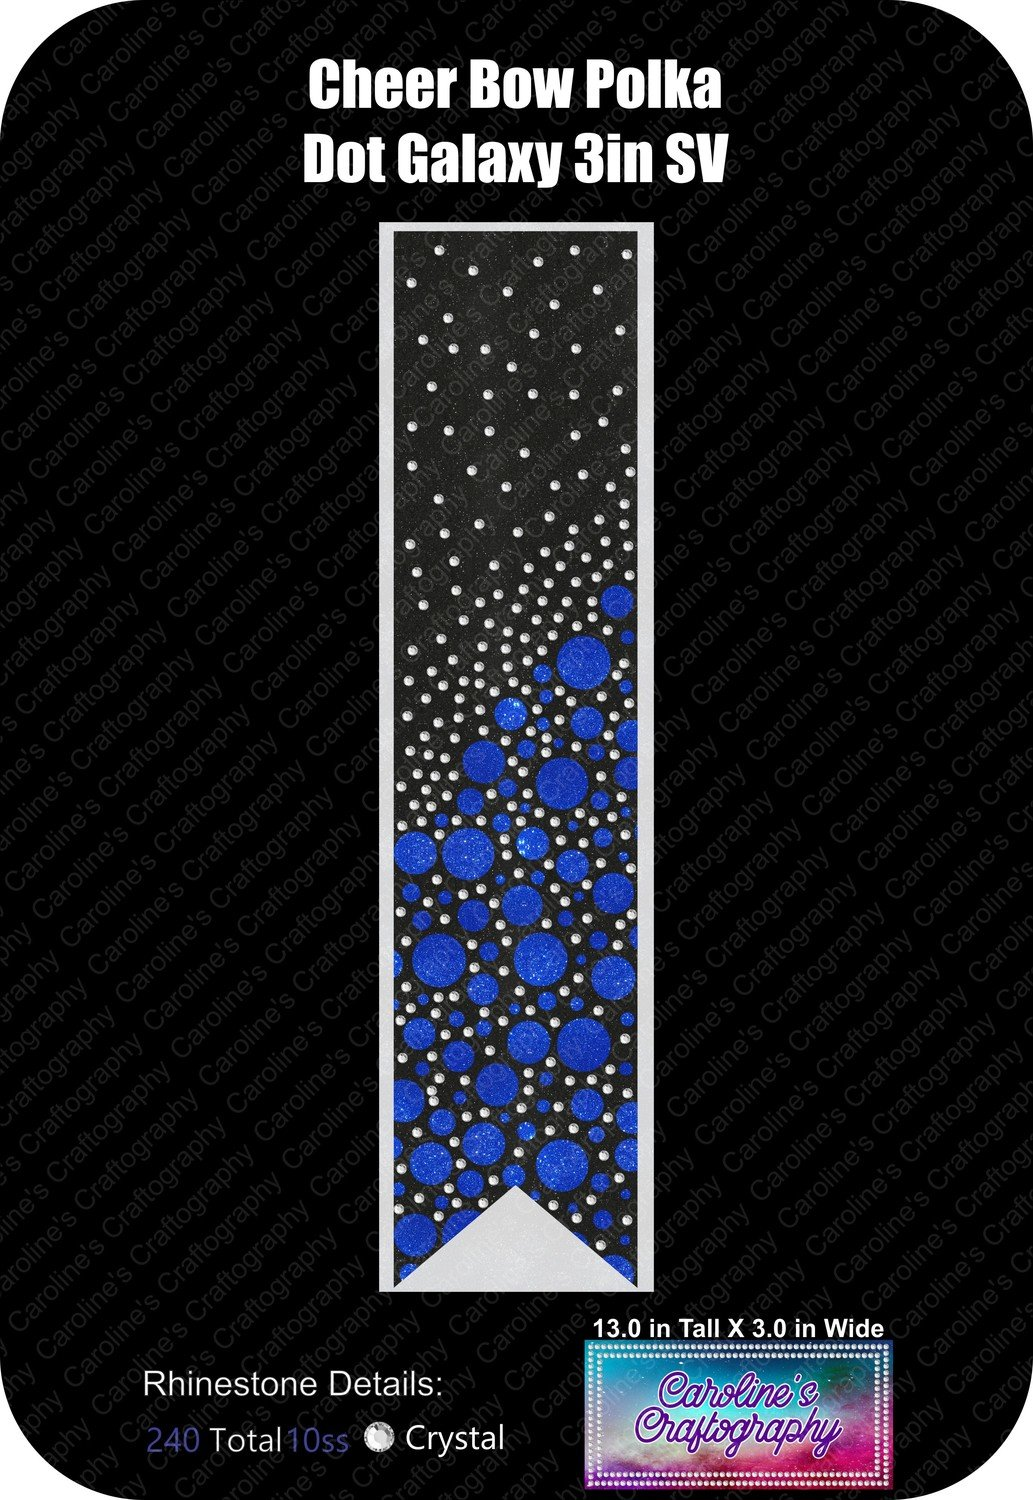 Polka Dot Galaxy Stone Vinyl Cheer Bow 3 inch